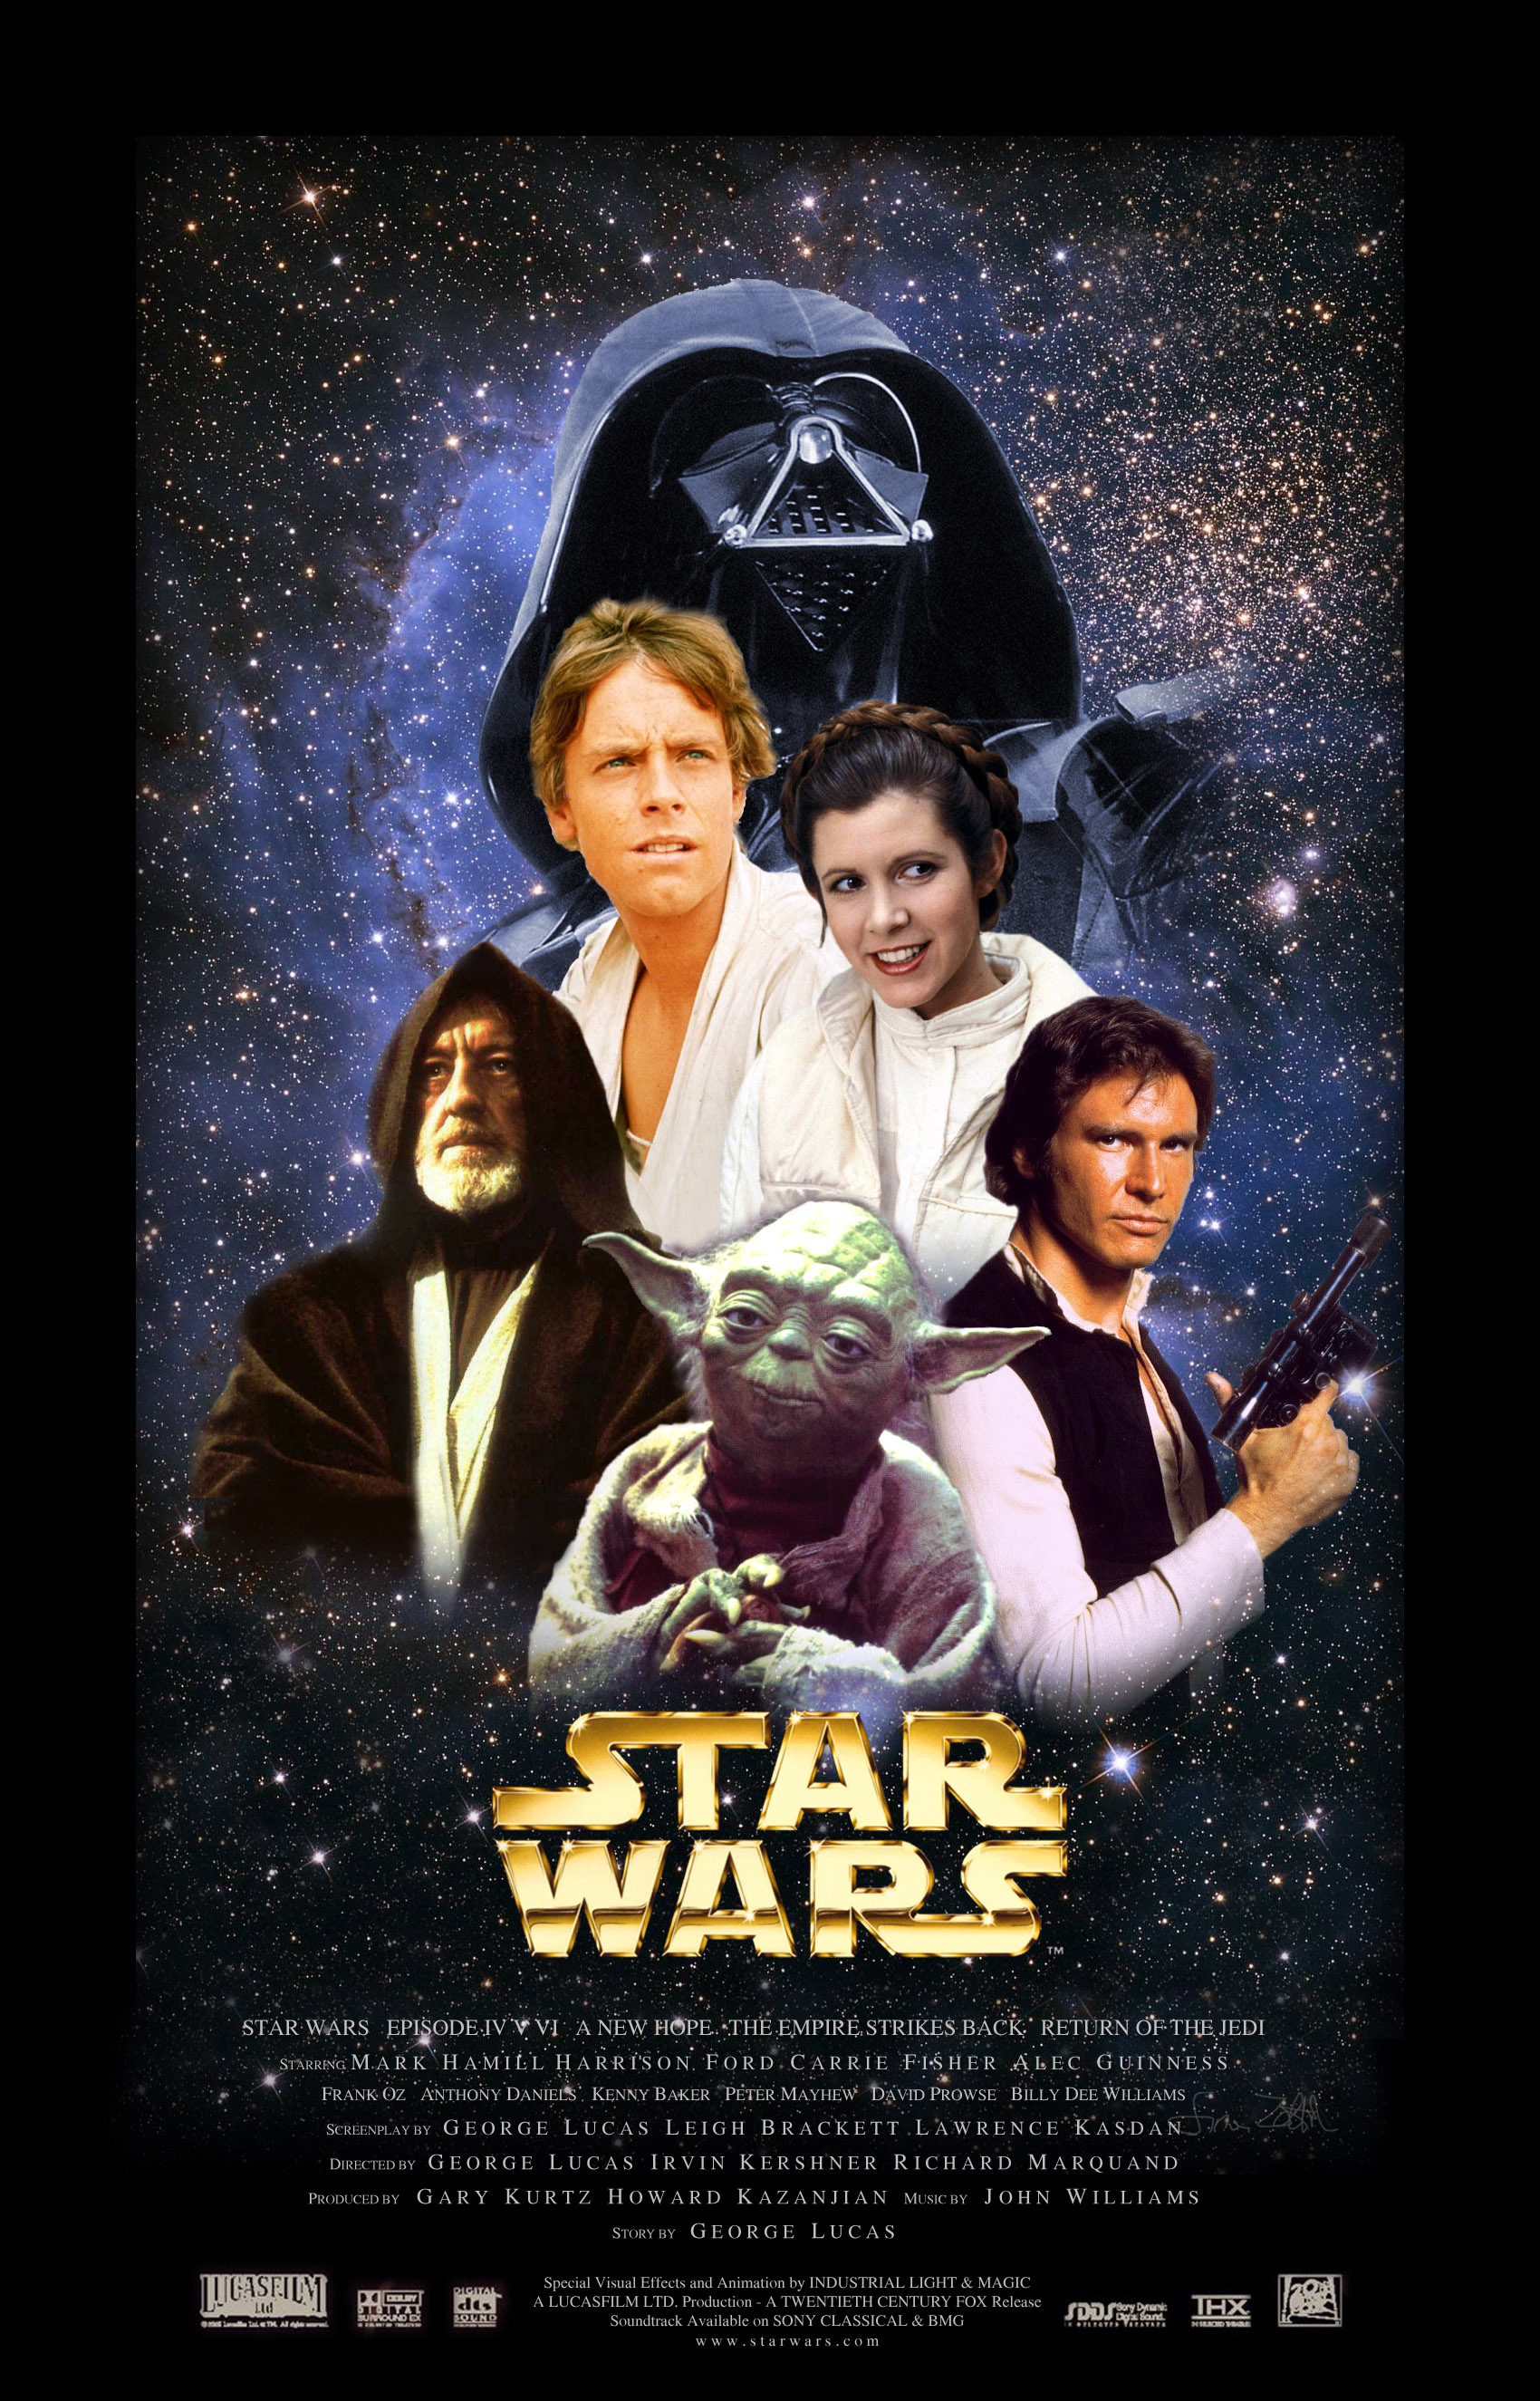 episode iii revenge of the sith posters two trilogy posters 1700x2650